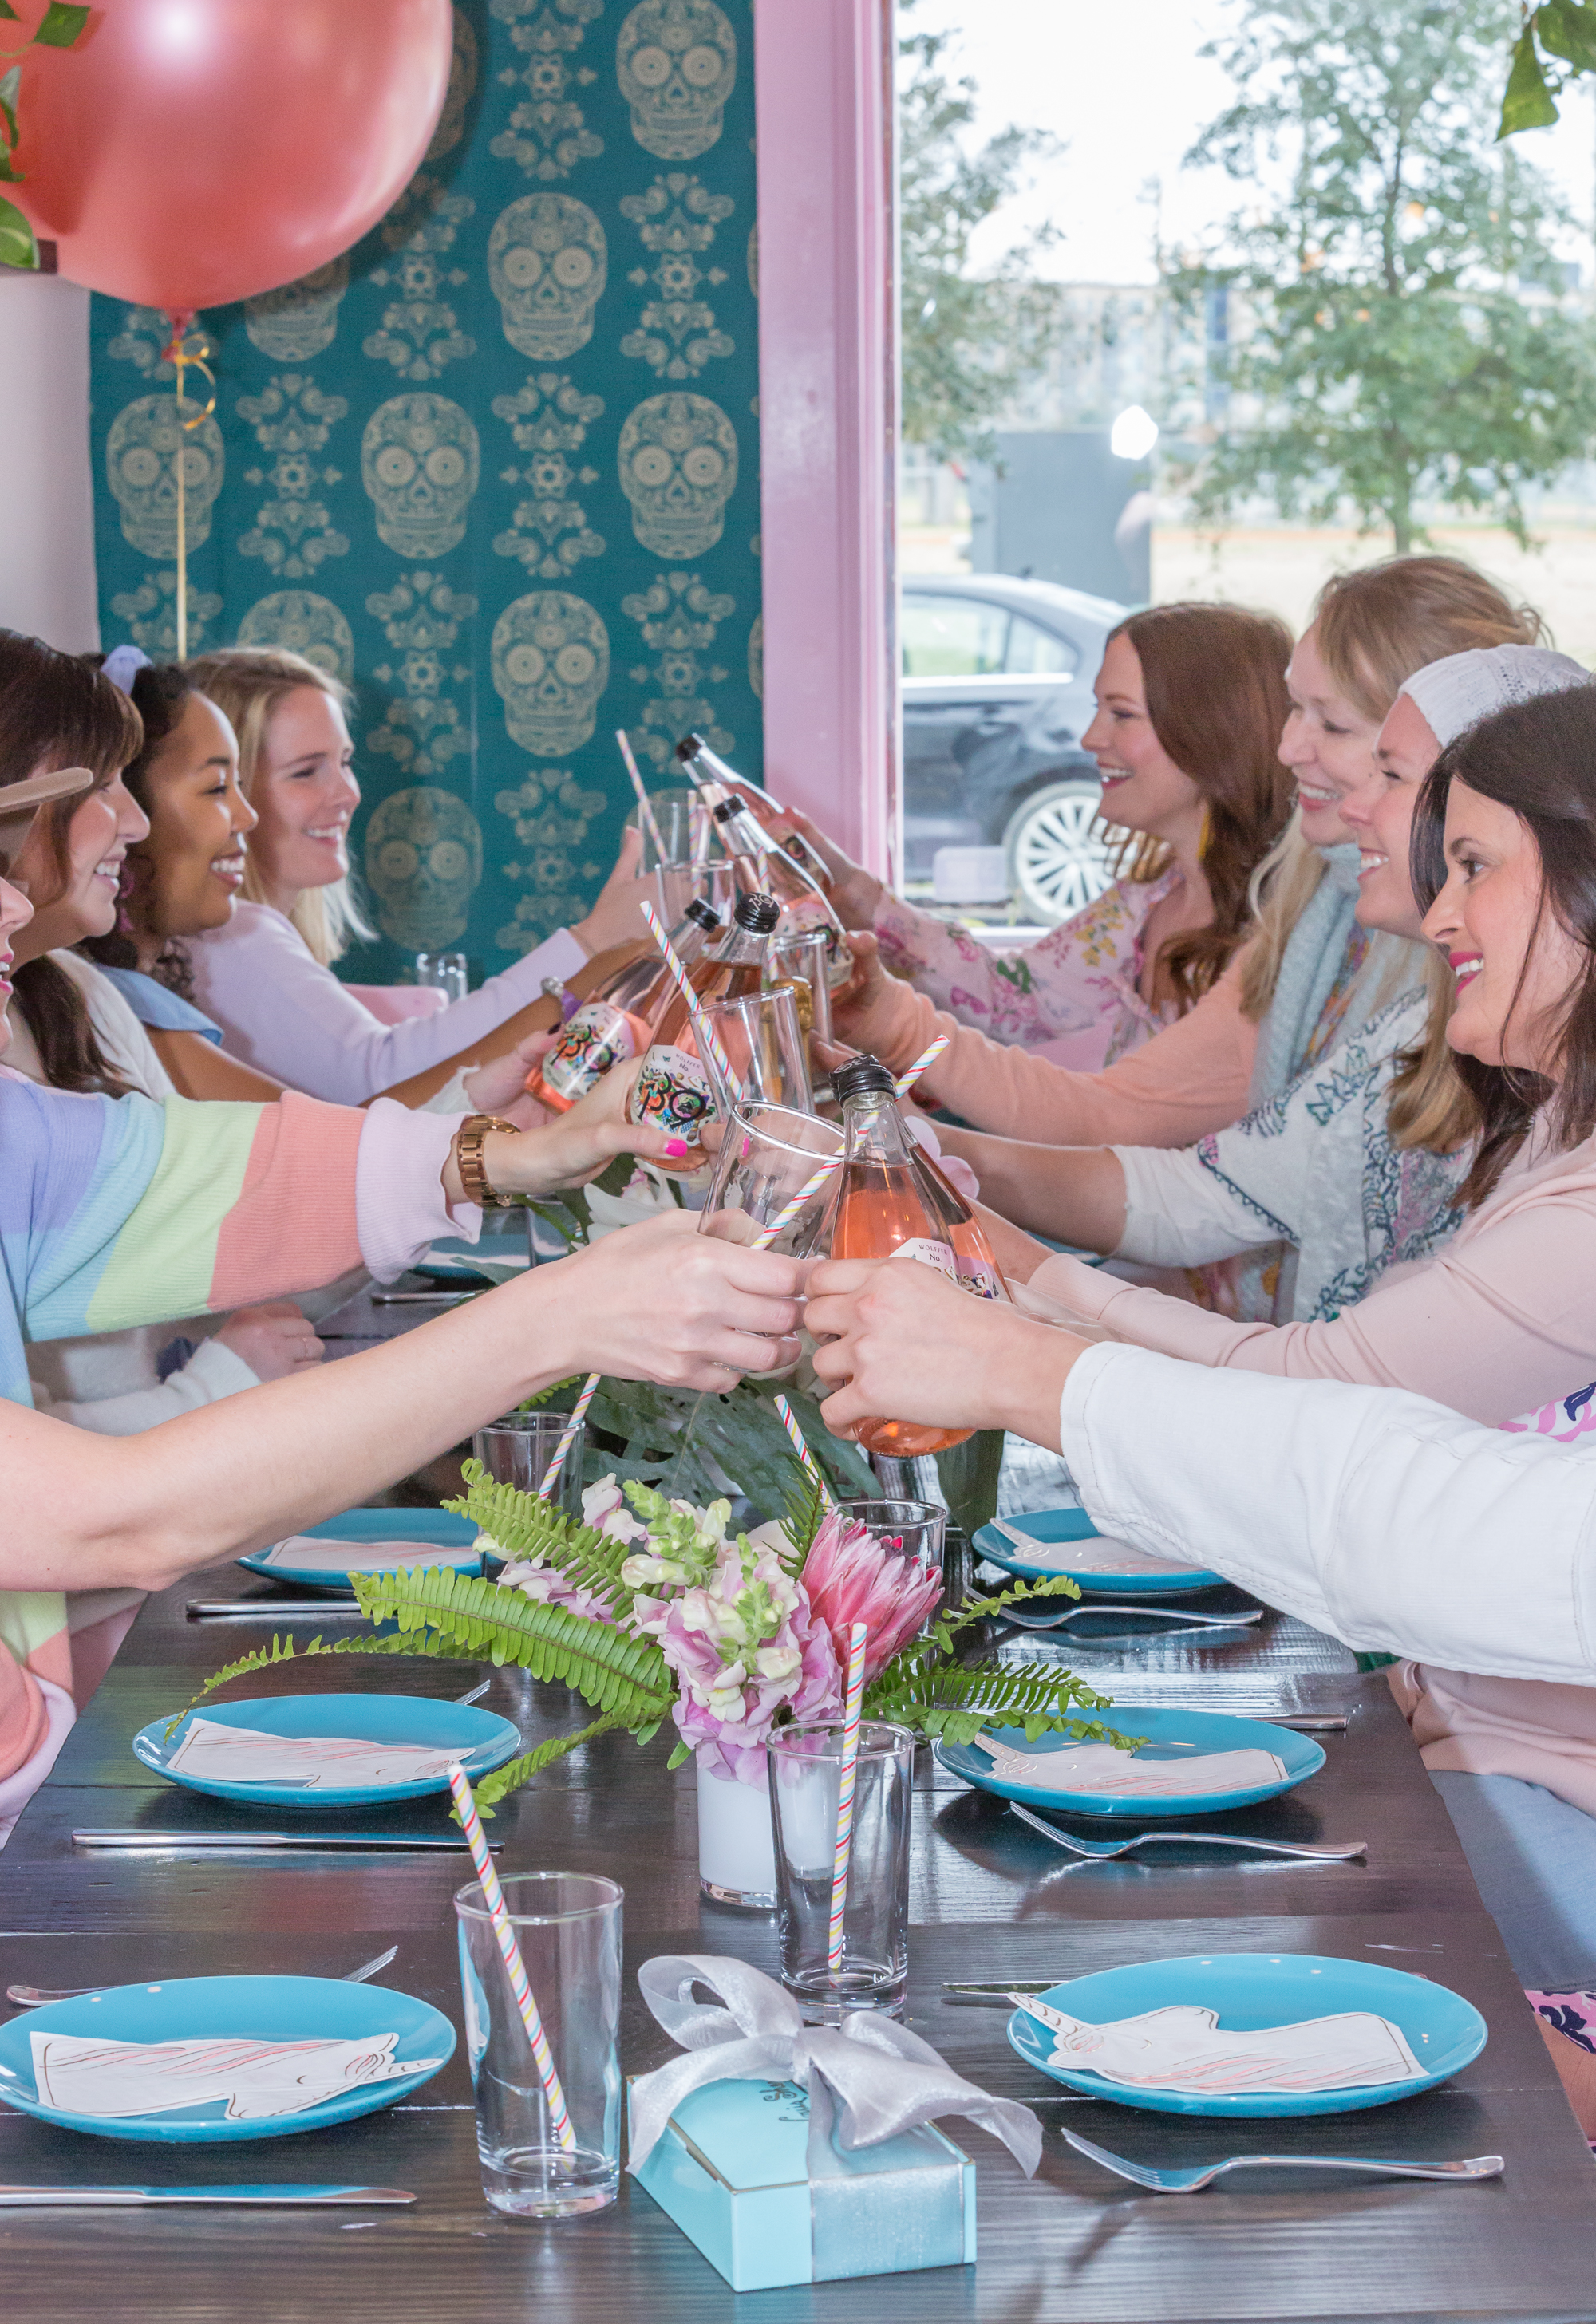 Charleston bridal shower or bachelorette party idea